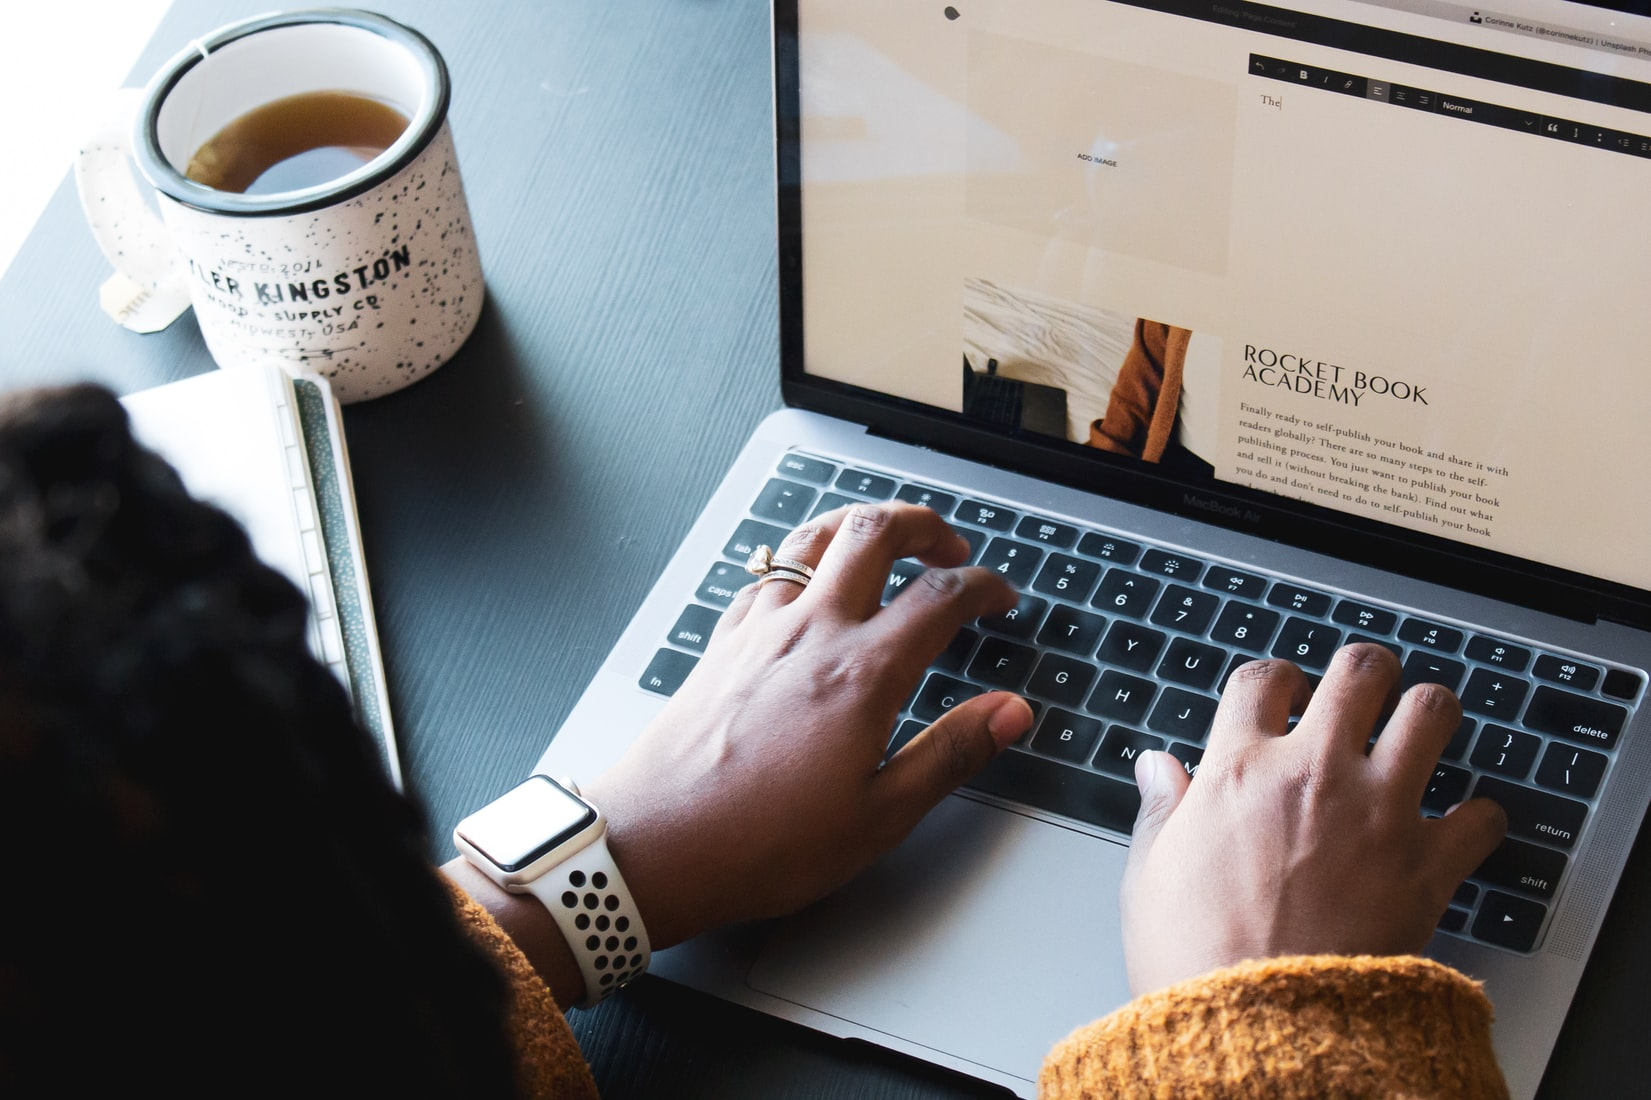 Why do businesses need blogs